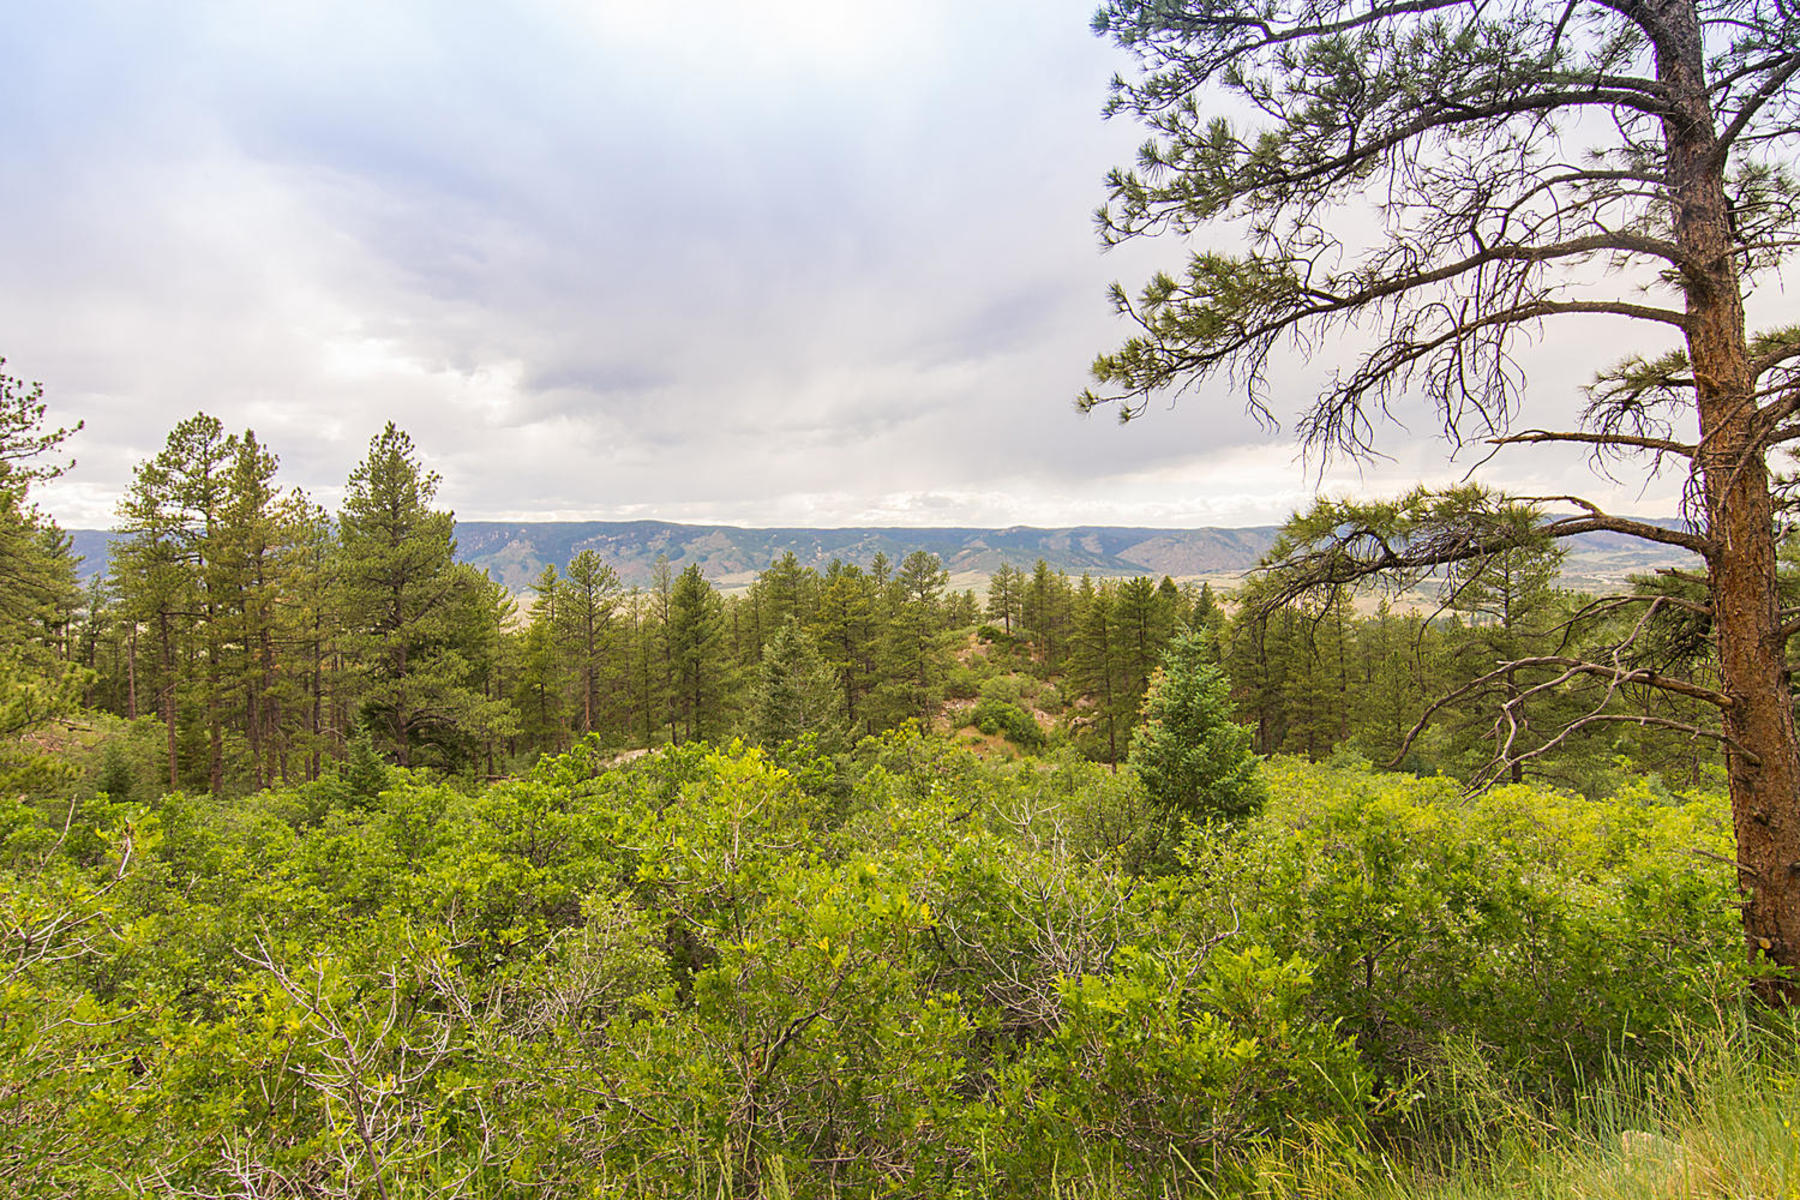 This is a rare opportunity to own a 35- acre piece of Dawson Butte with views of 5080 S Perry Park Rd Sedalia, Colorado 80135 United States